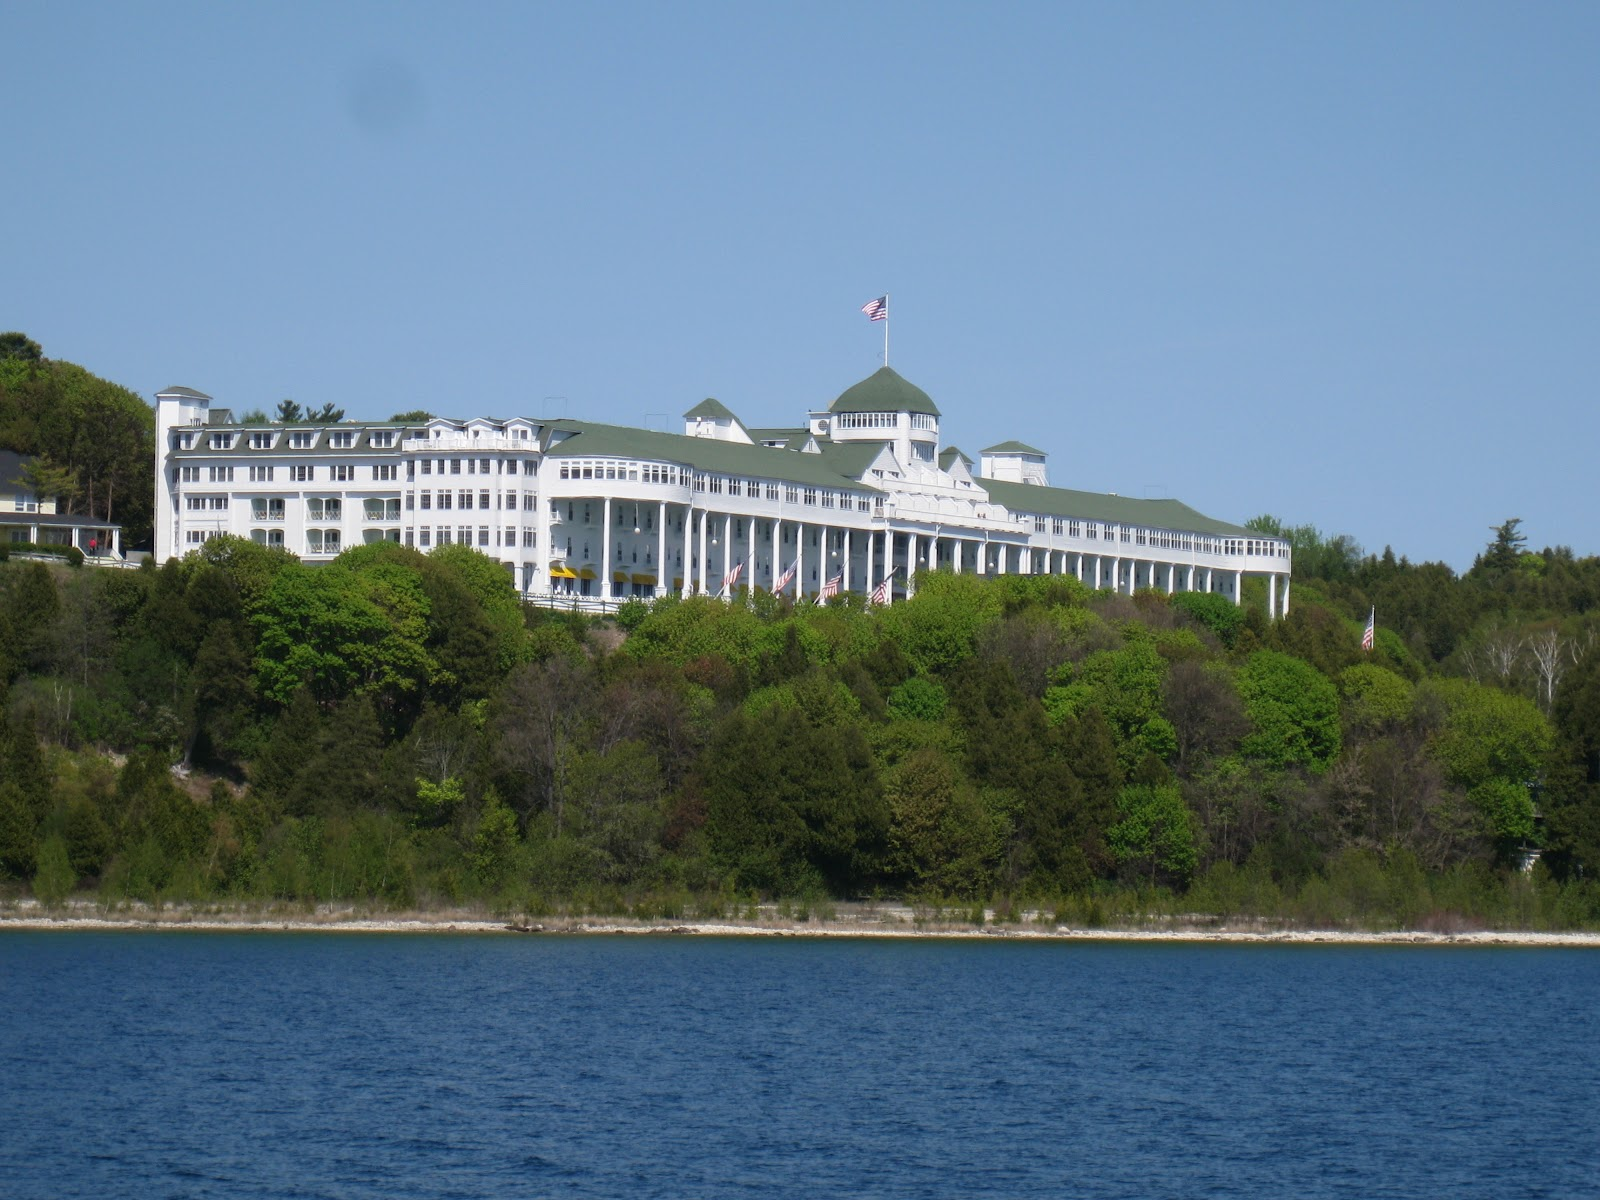 Download this Day Ferried Across The Straits Mackinac Island This Morning picture